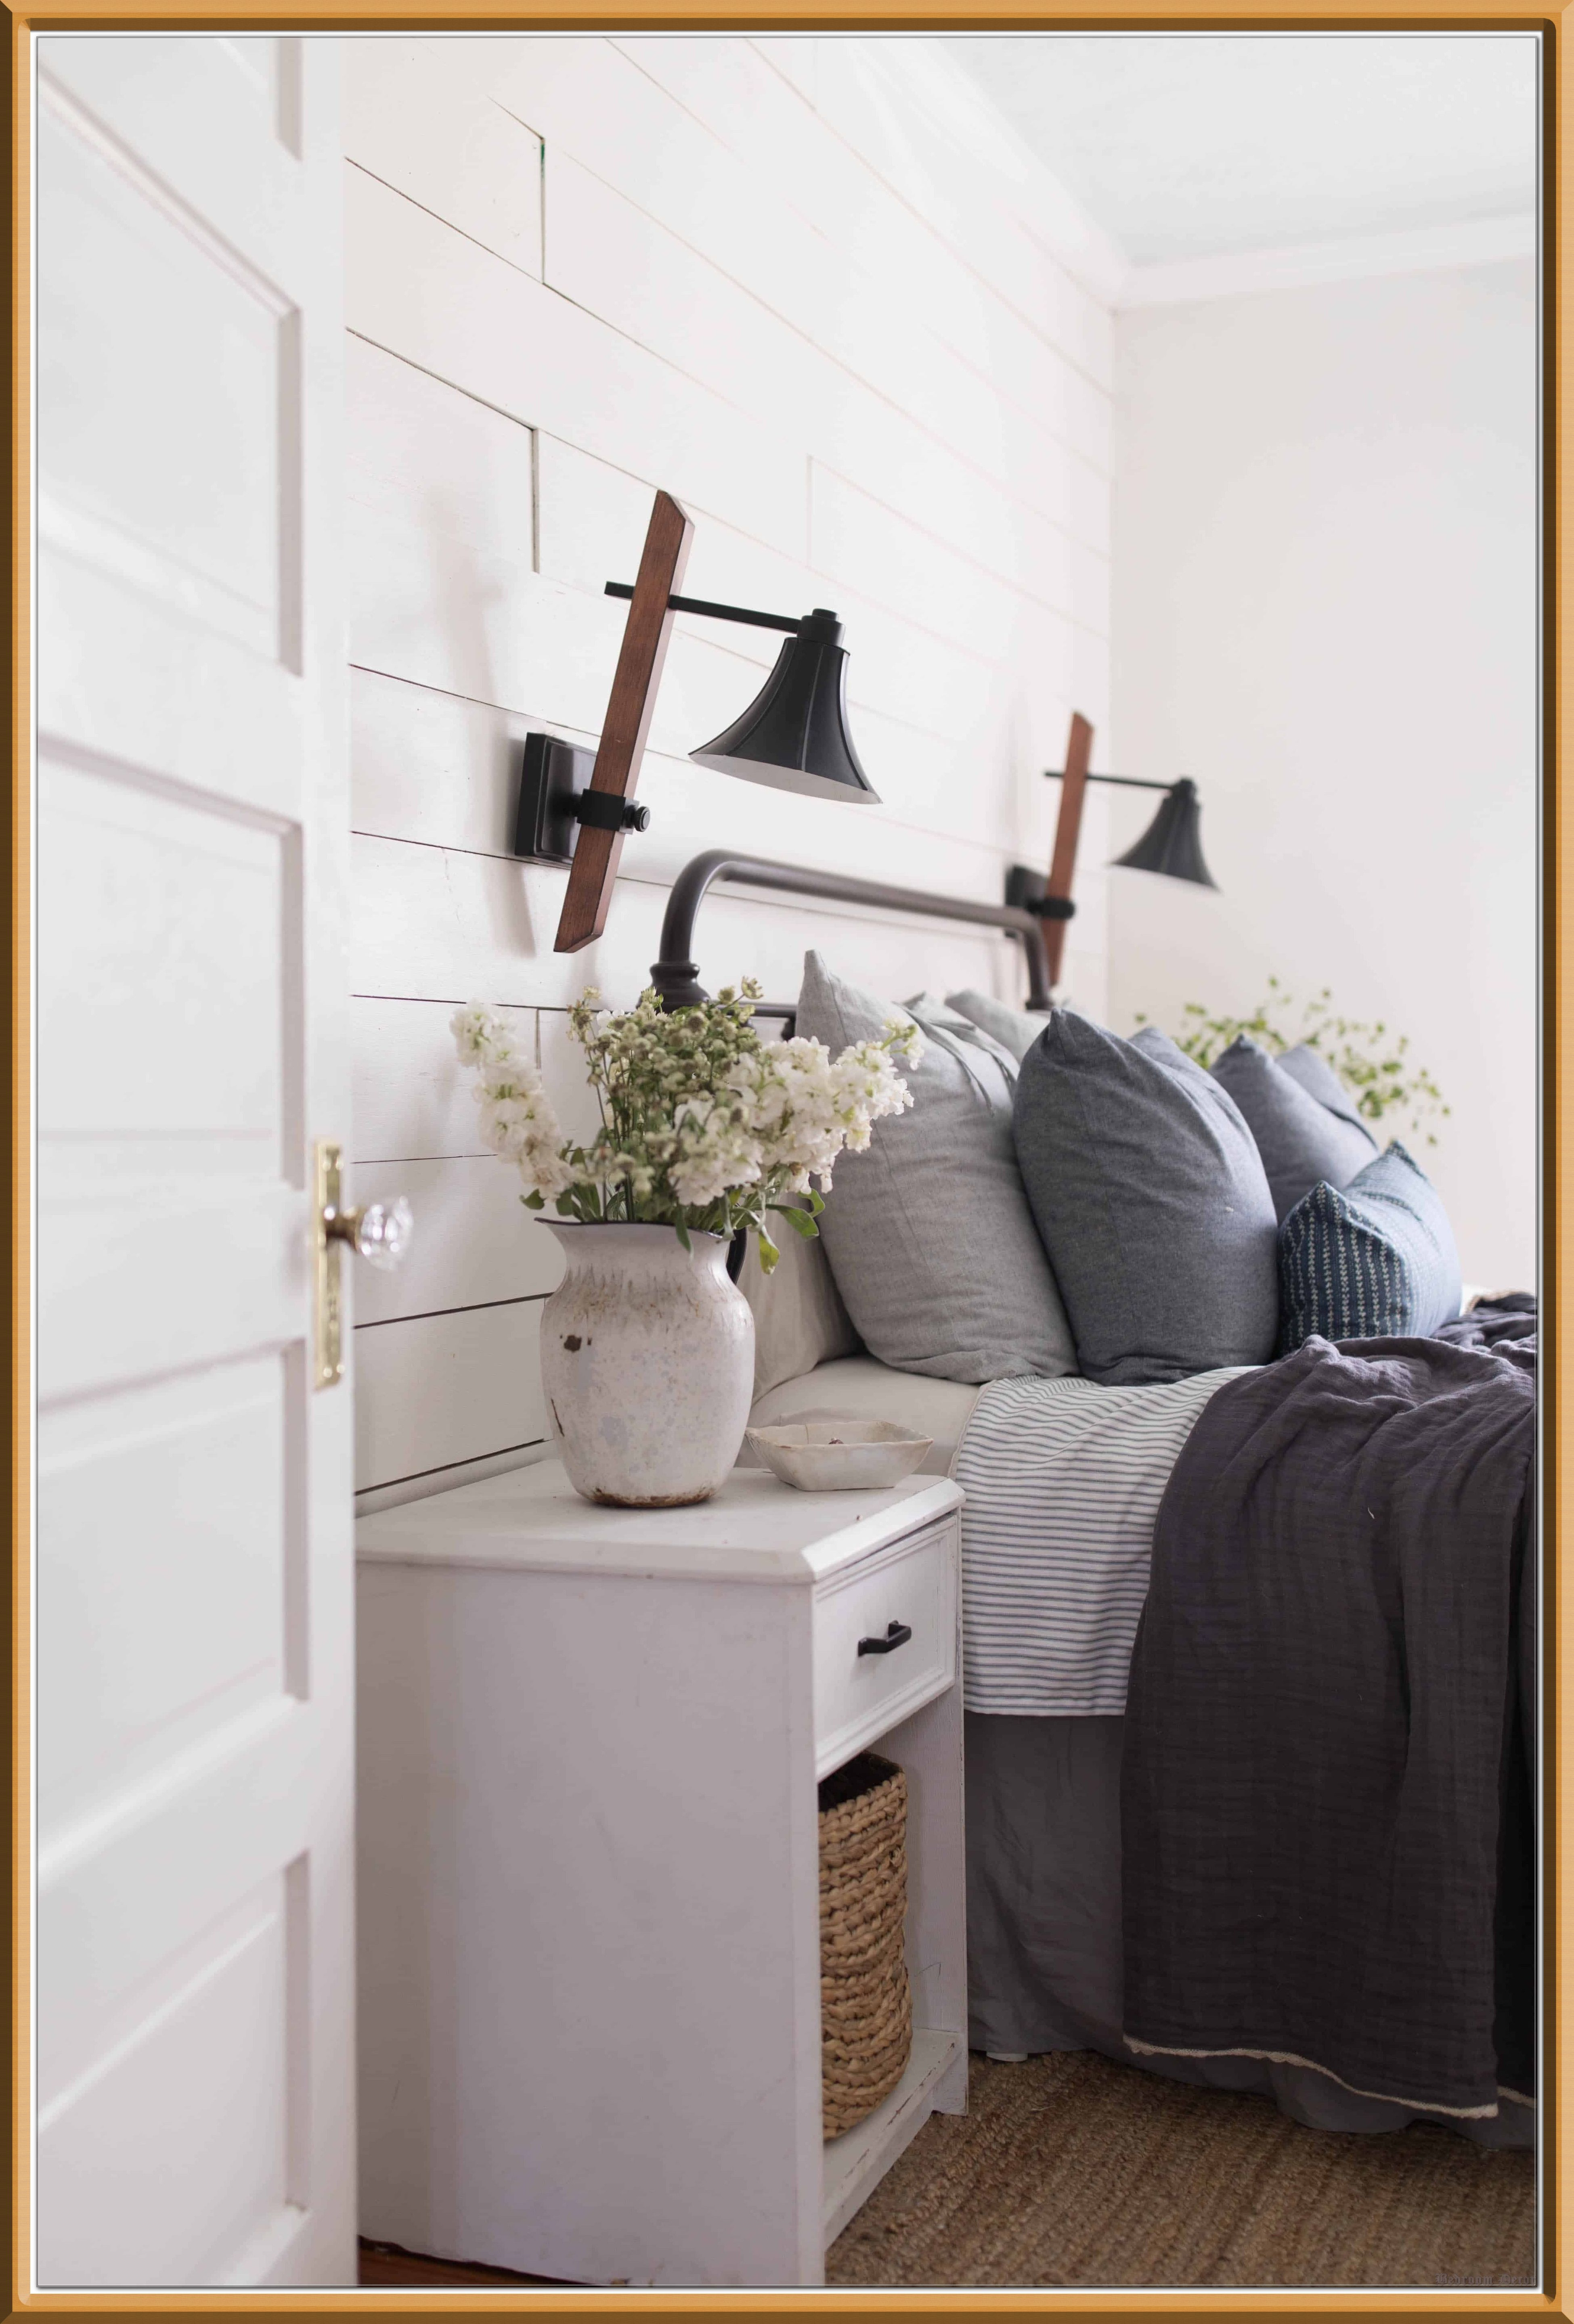 Don't Waste Time! 5 Facts To Start Bedroom Decor